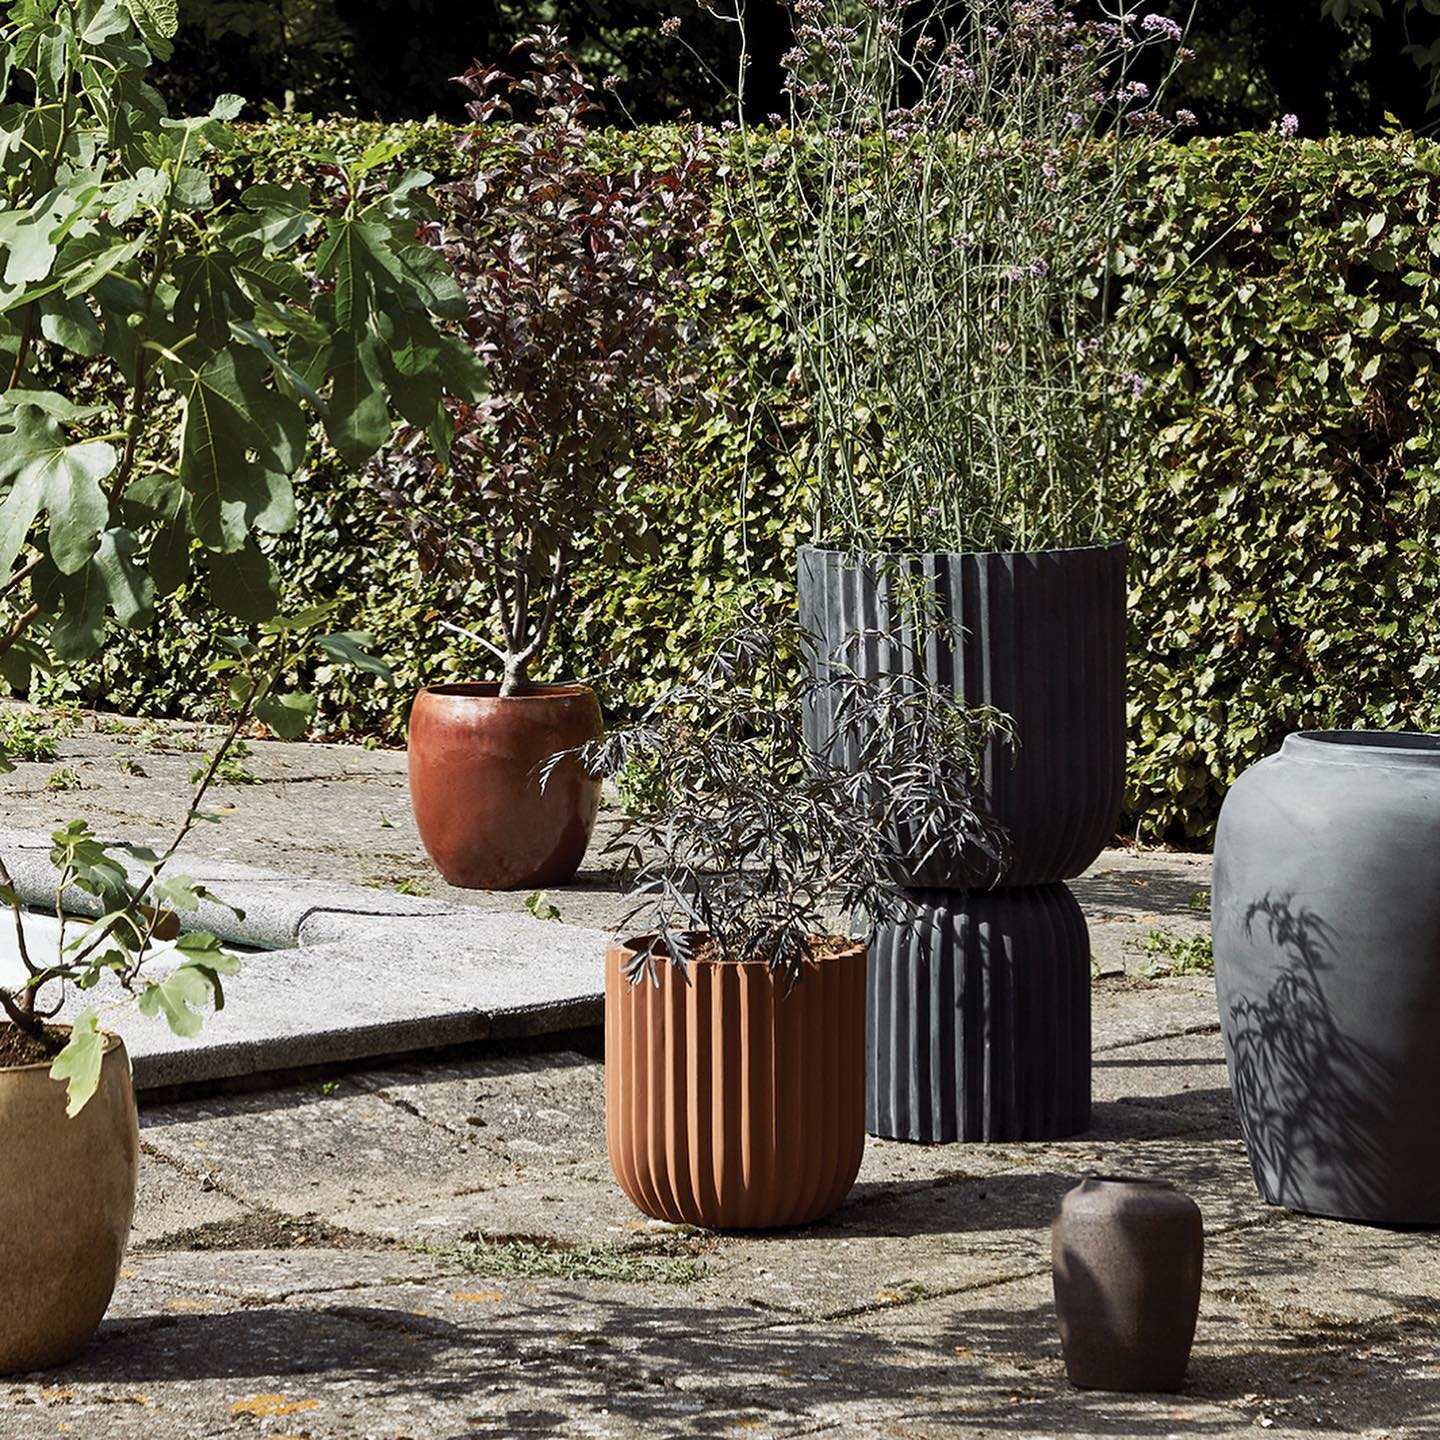 Have you started your preparations for a summer garden yet? You will find a wide range of flower pots in our new season collection like these concrete finish planters to complement our RILLO tables posted yesterday. . . #planters #concretepots #pots #garden #summergarden #plants